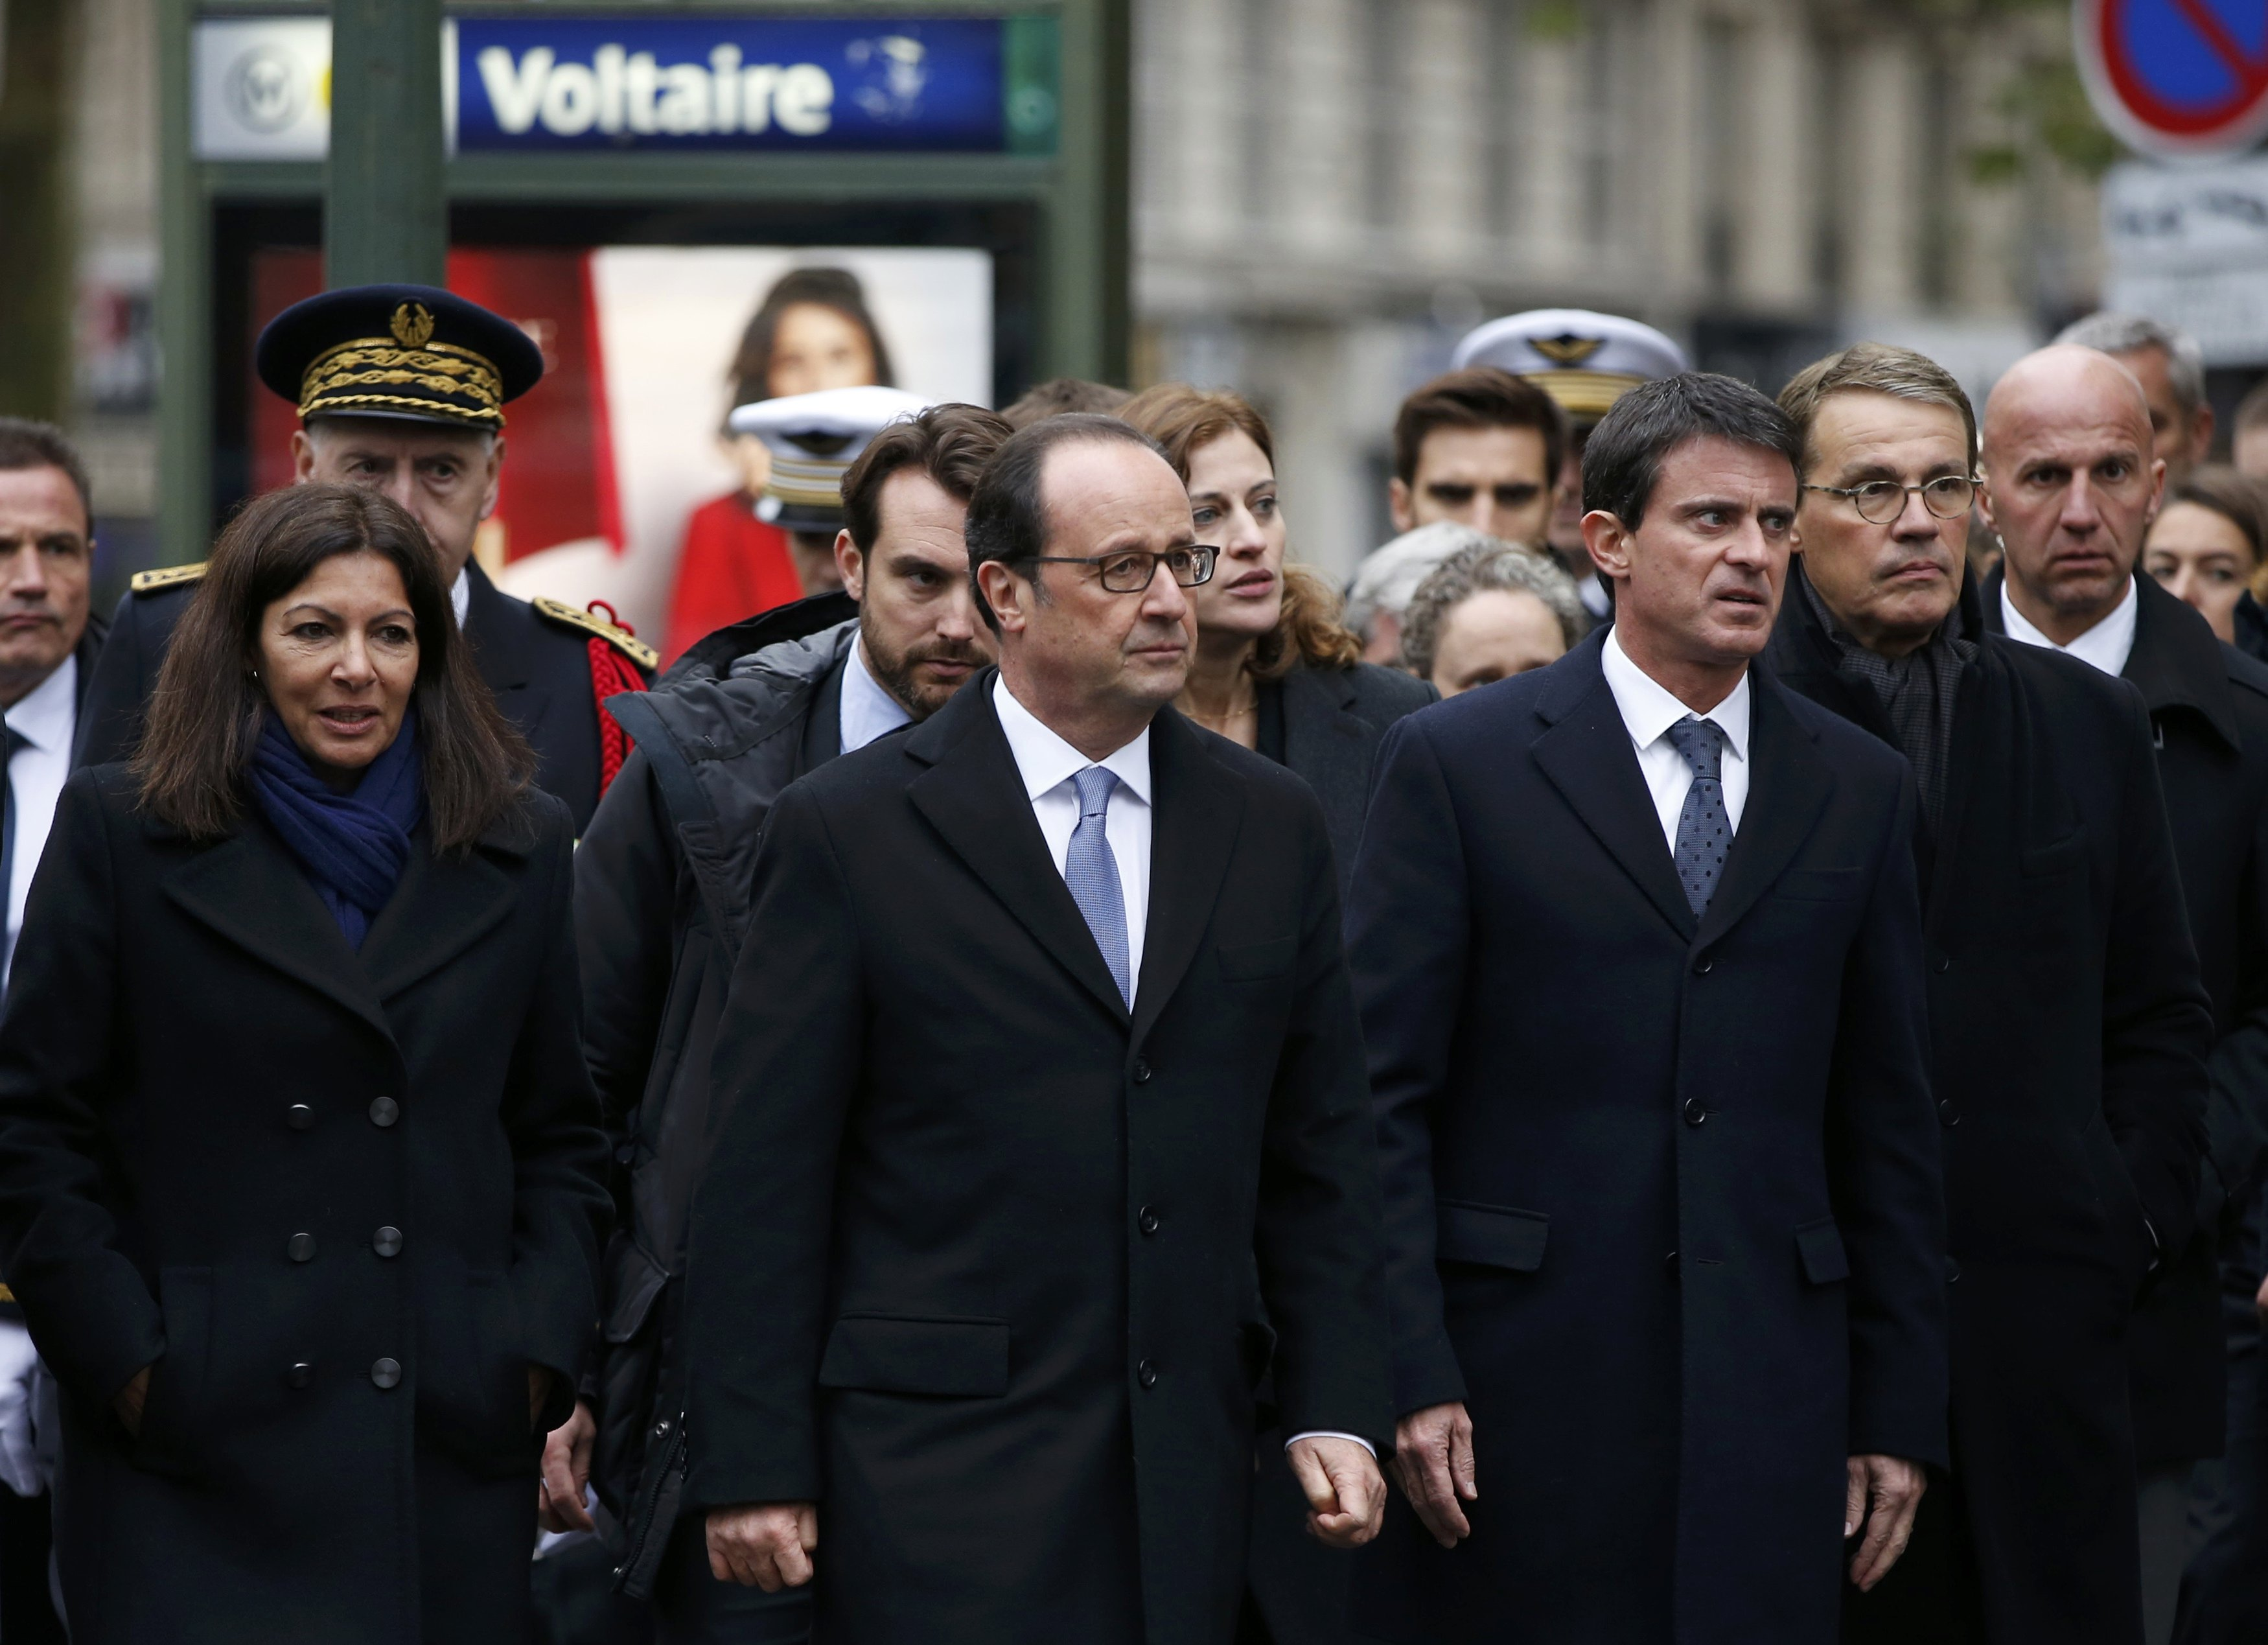 Officials including French President Hollande, Prime Minister Valls and Paris Mayor Hidalgo arrive at Paris 11th district town hall